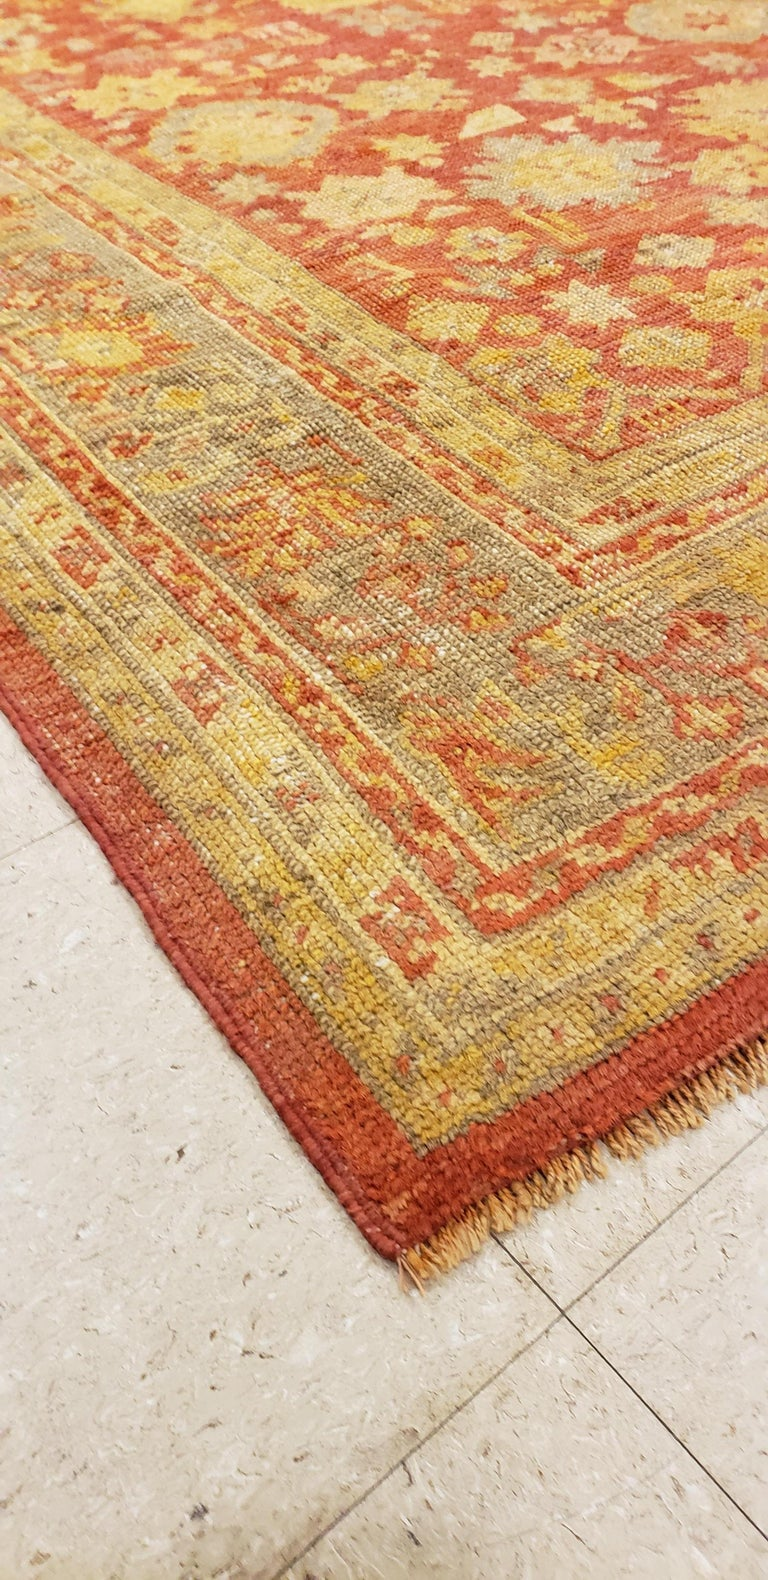 19th Century Oushak Carpet, Oriental Rug, Handmade Rug Saffron, Ivory, Light Blue and Coral For Sale